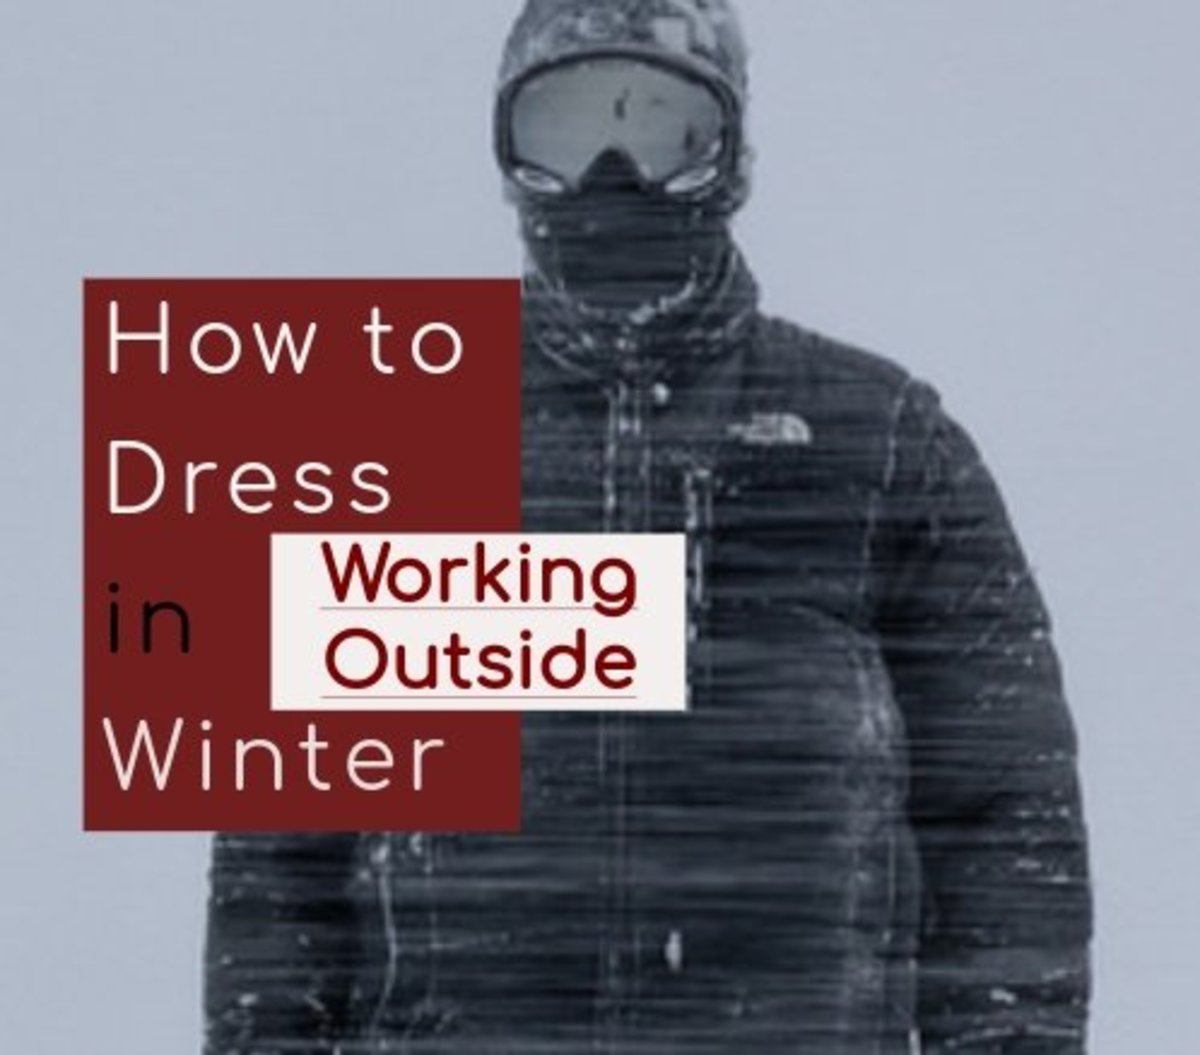 Outdoor Work Clothing for Winter Weather